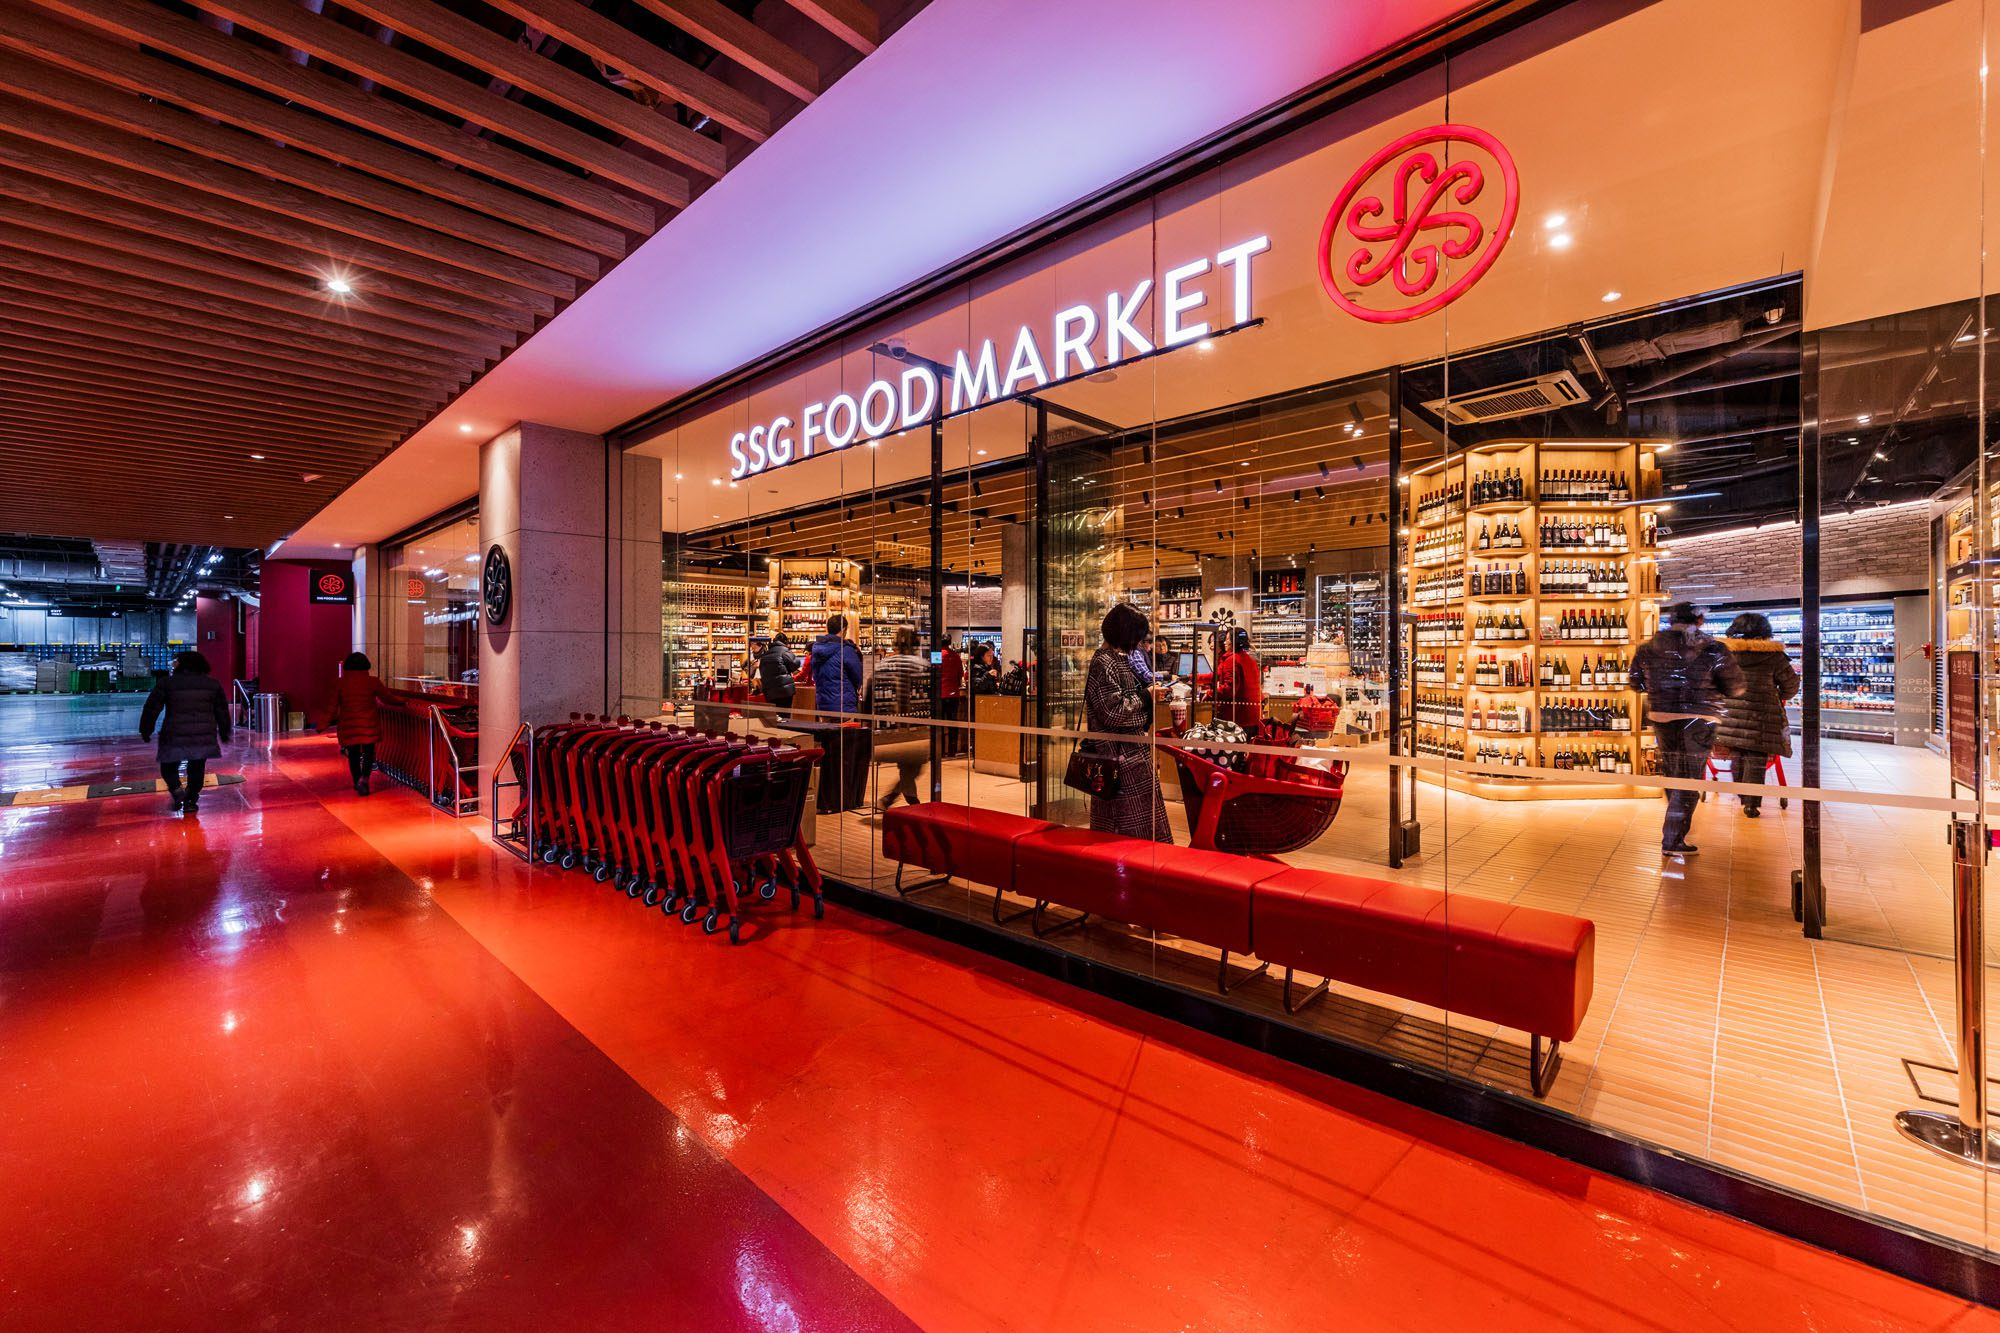 SSG Food Market, Seoul | 2019 Design Award Winner